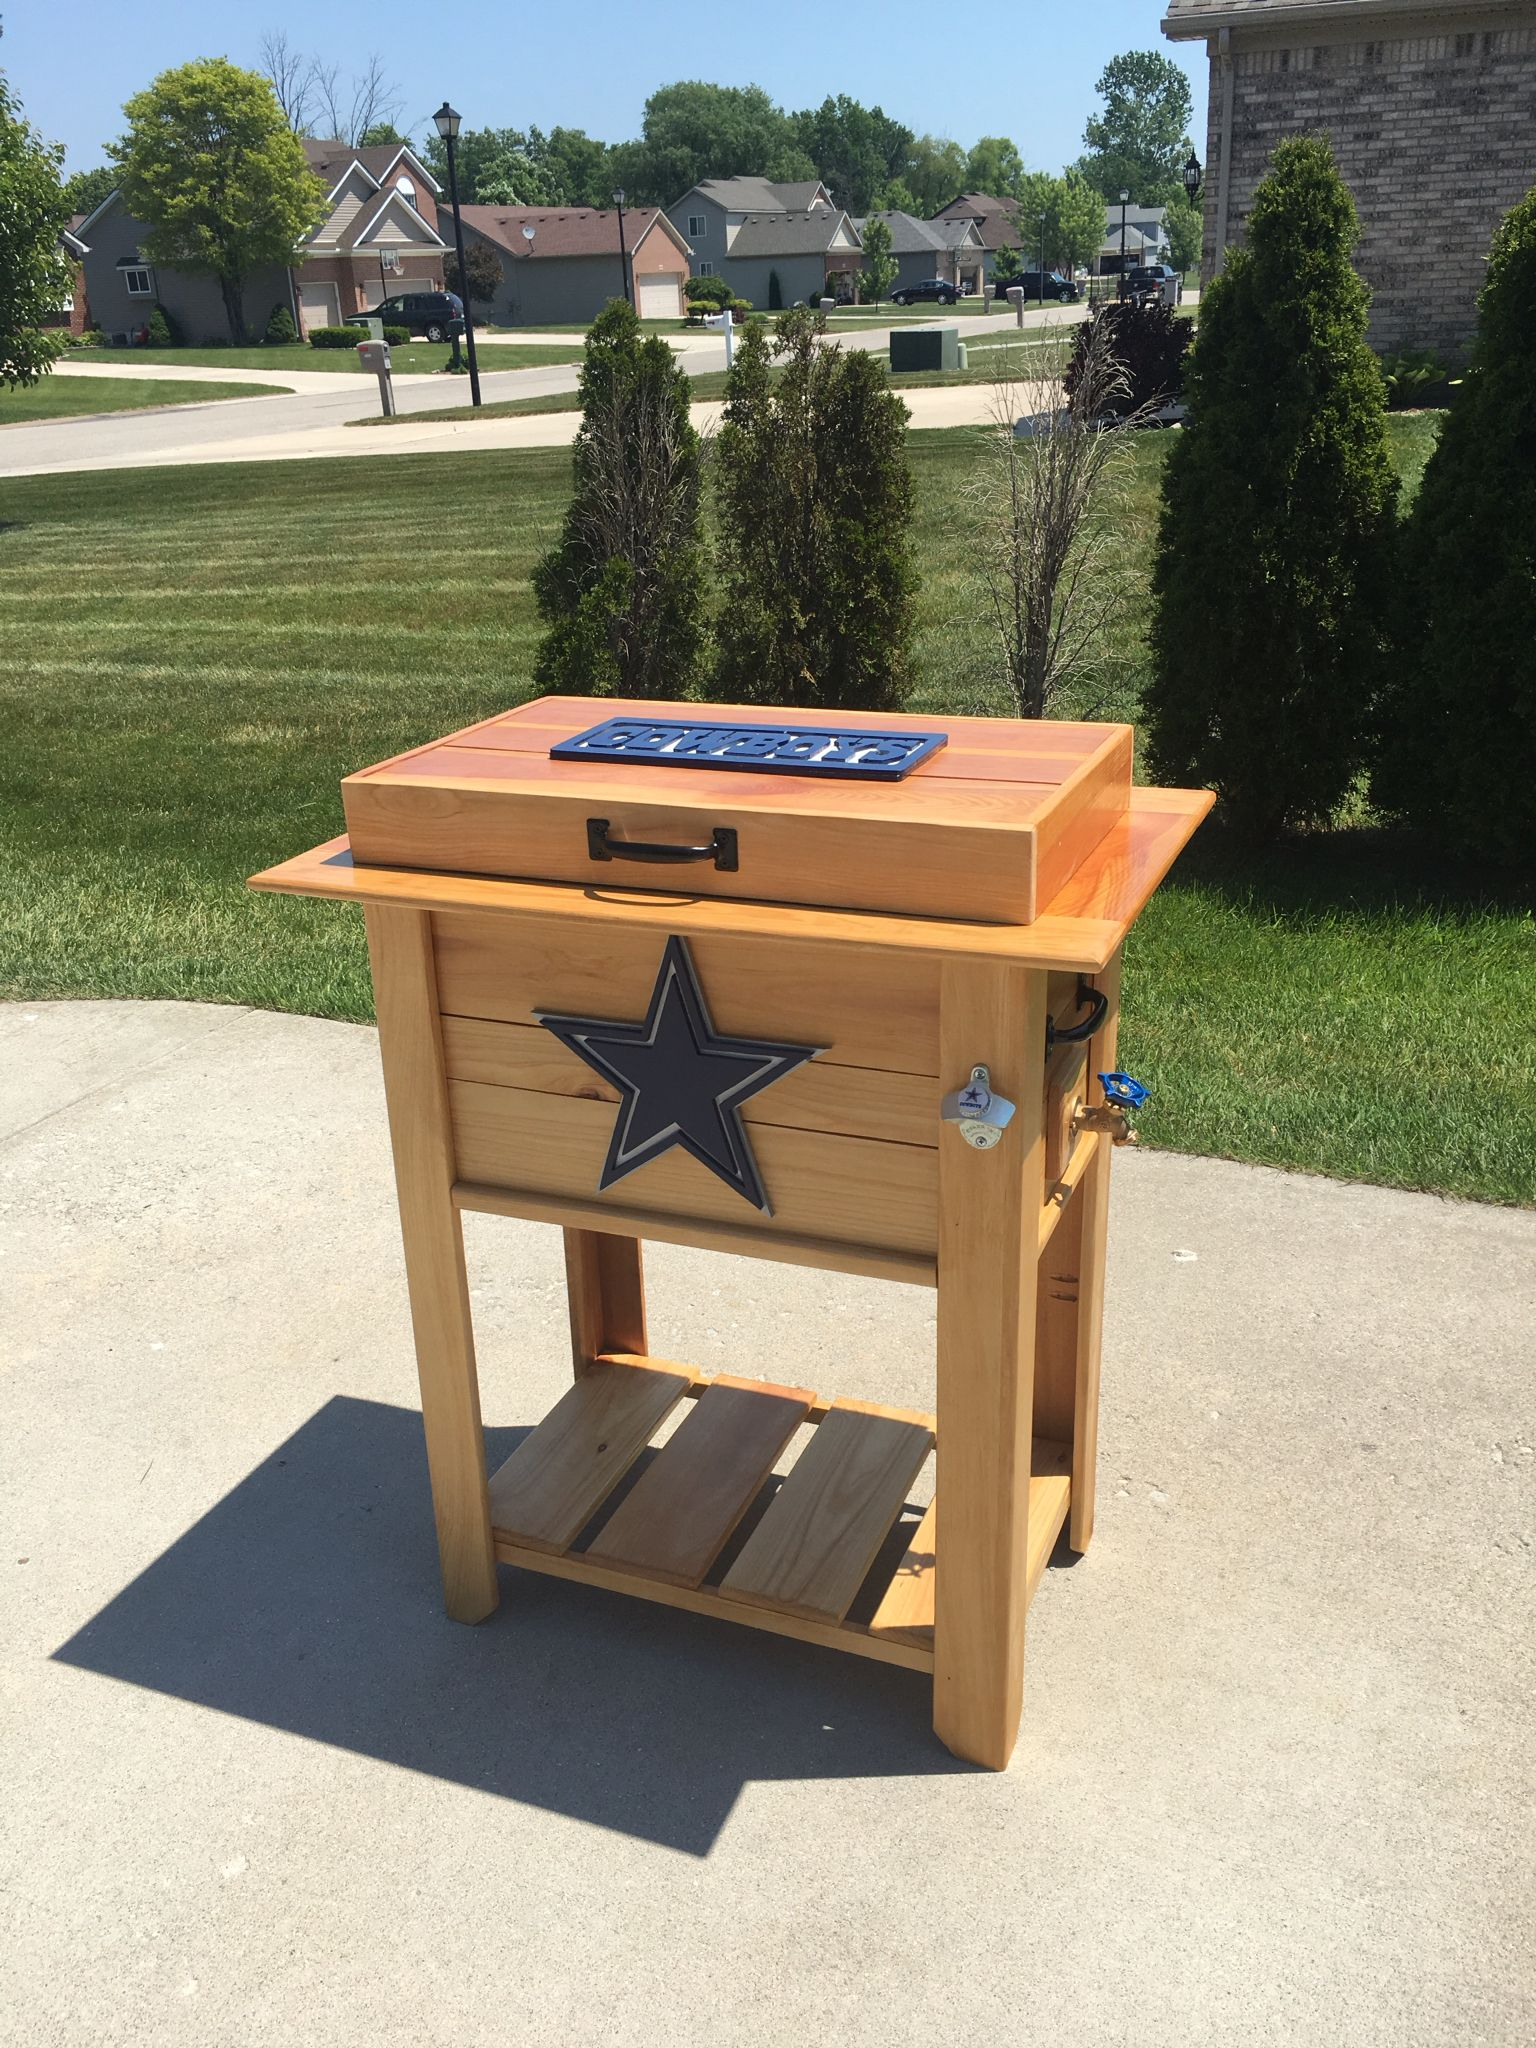 Dallas Cowboys Patio Deck Cooler Or Ice Chest Made From Cedar Fence Pickets Includes A 48 Qt Coleman Cool Deck Cooler Dallas Cowboys Logo Cedar Fence Pickets